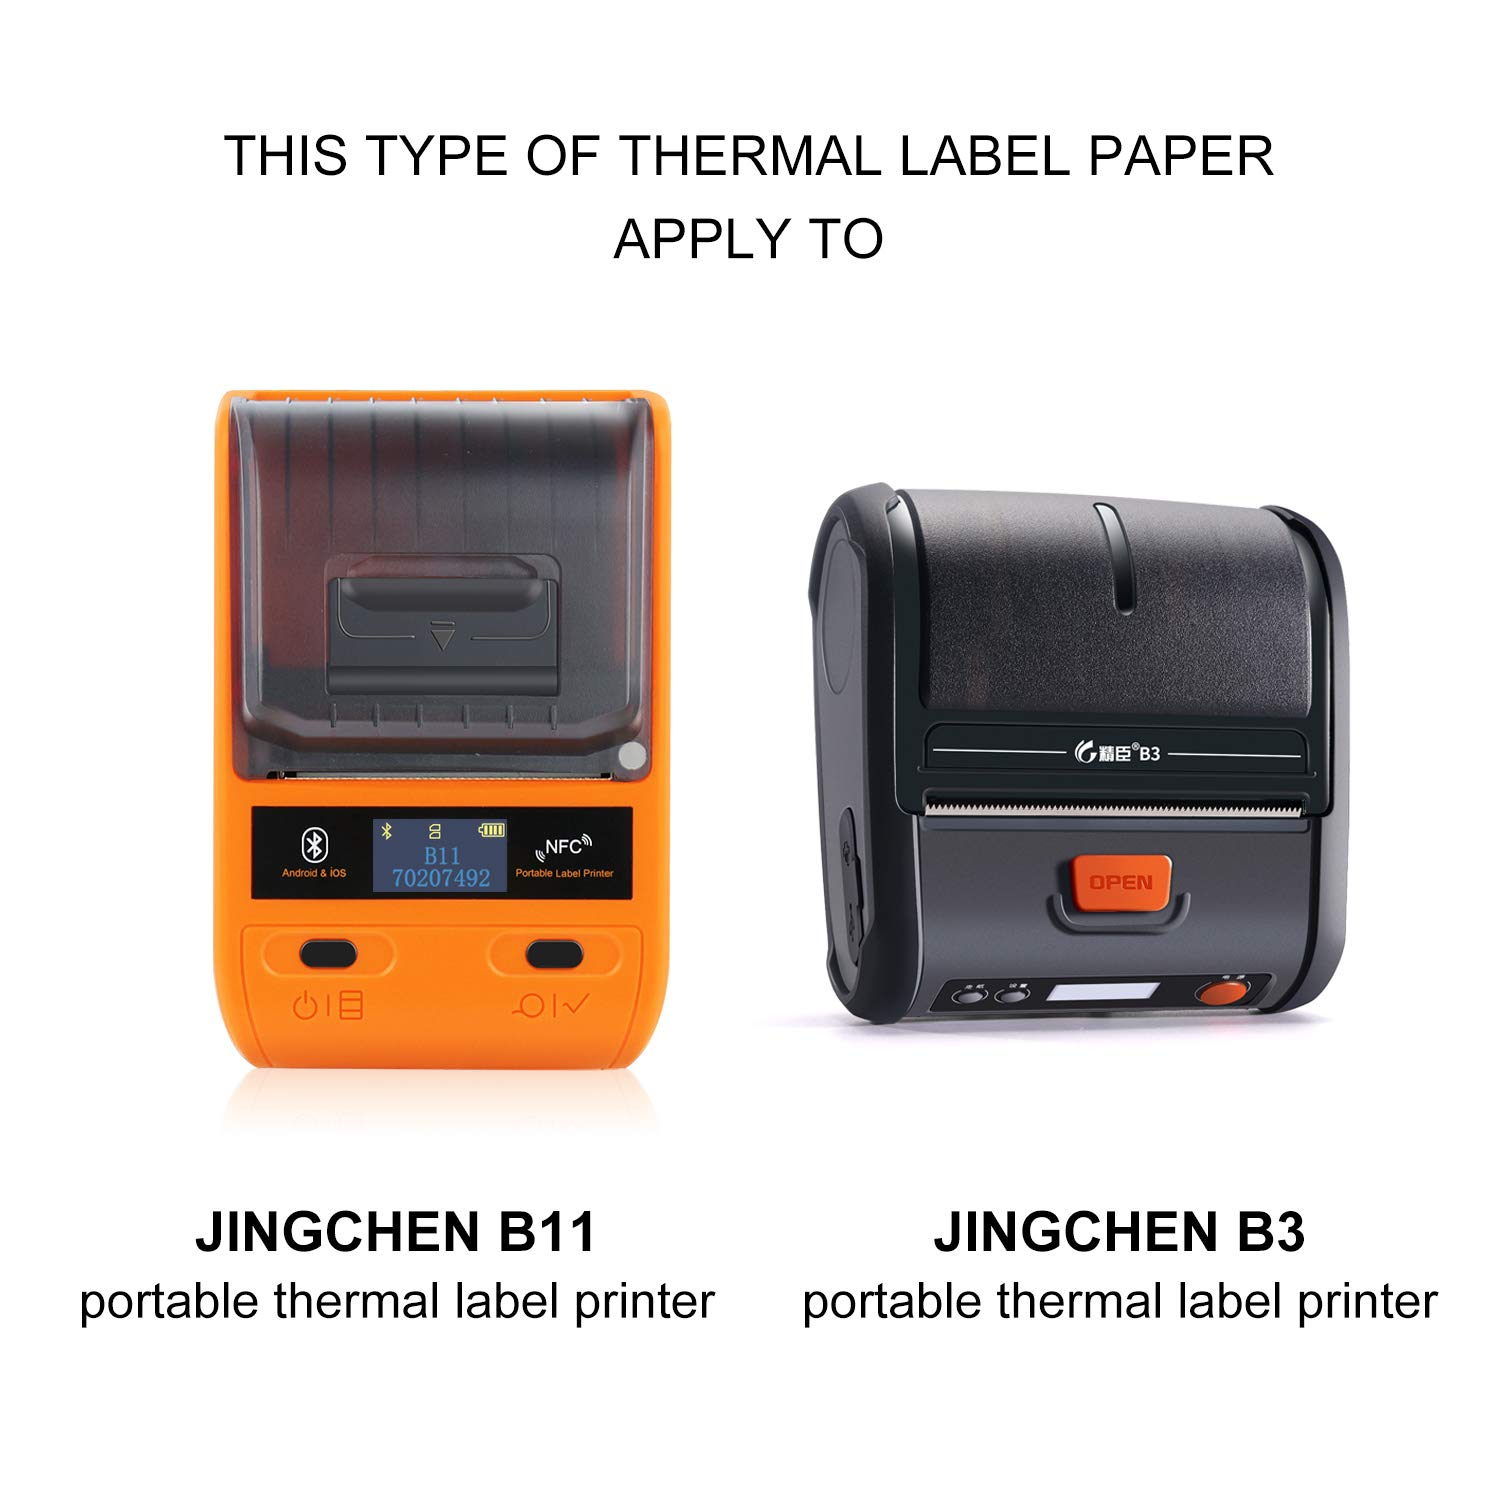 """JINGCHEN Thermal Label Paper, Print with B11/B3, Widely Used in Inventory/Food/Supermarkets/Clothing & Shoes & Hats, Label Printing, 1.97""""x1.18"""", 230 Labels/Roll by JINGCHEN (Image #6)"""